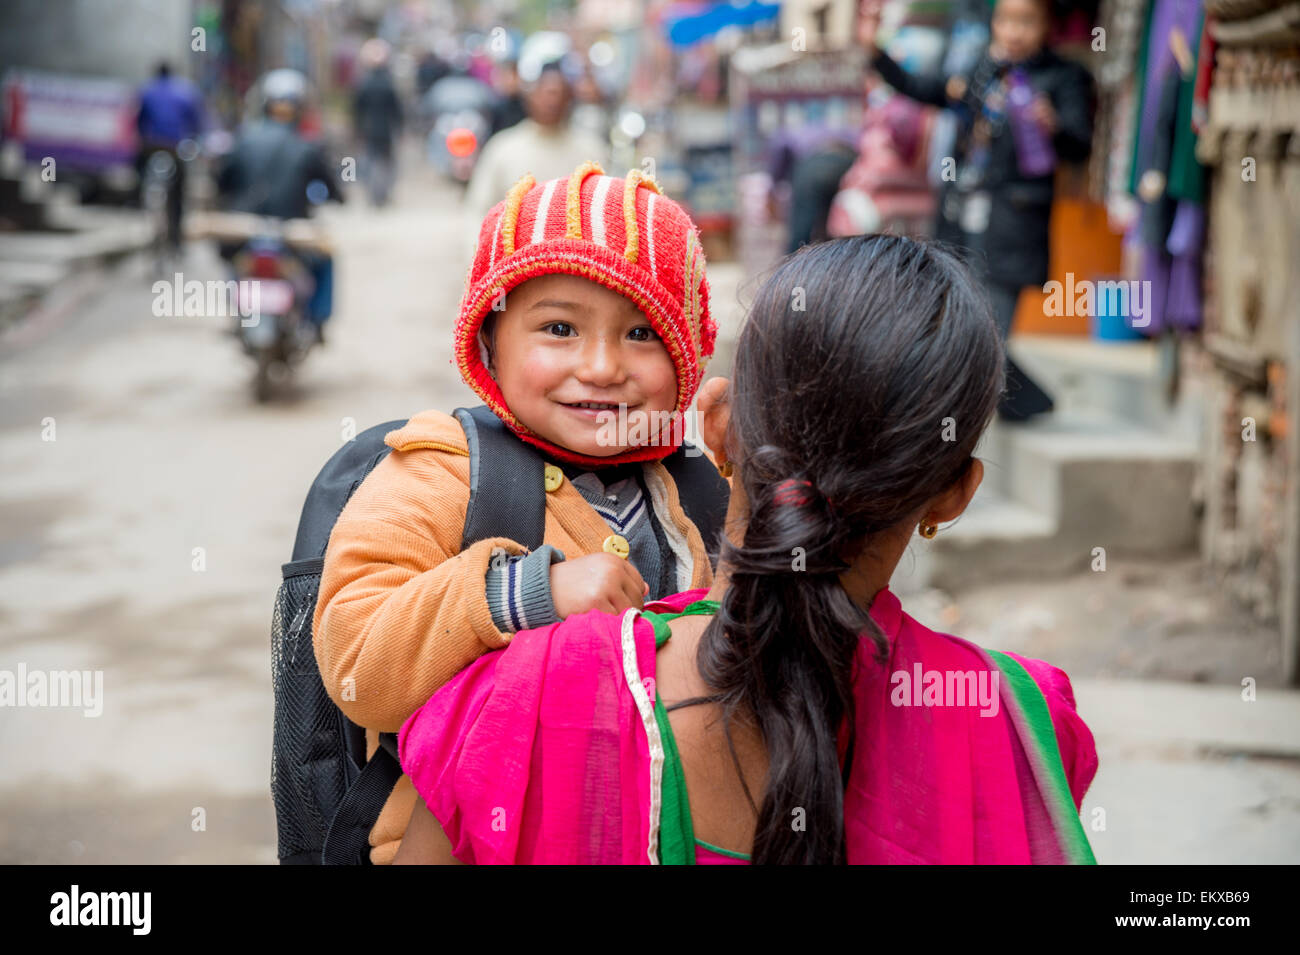 A young nepali child in his mother's arms is looking at the camera, in Kathmandu's streets, Nepal - Stock Image